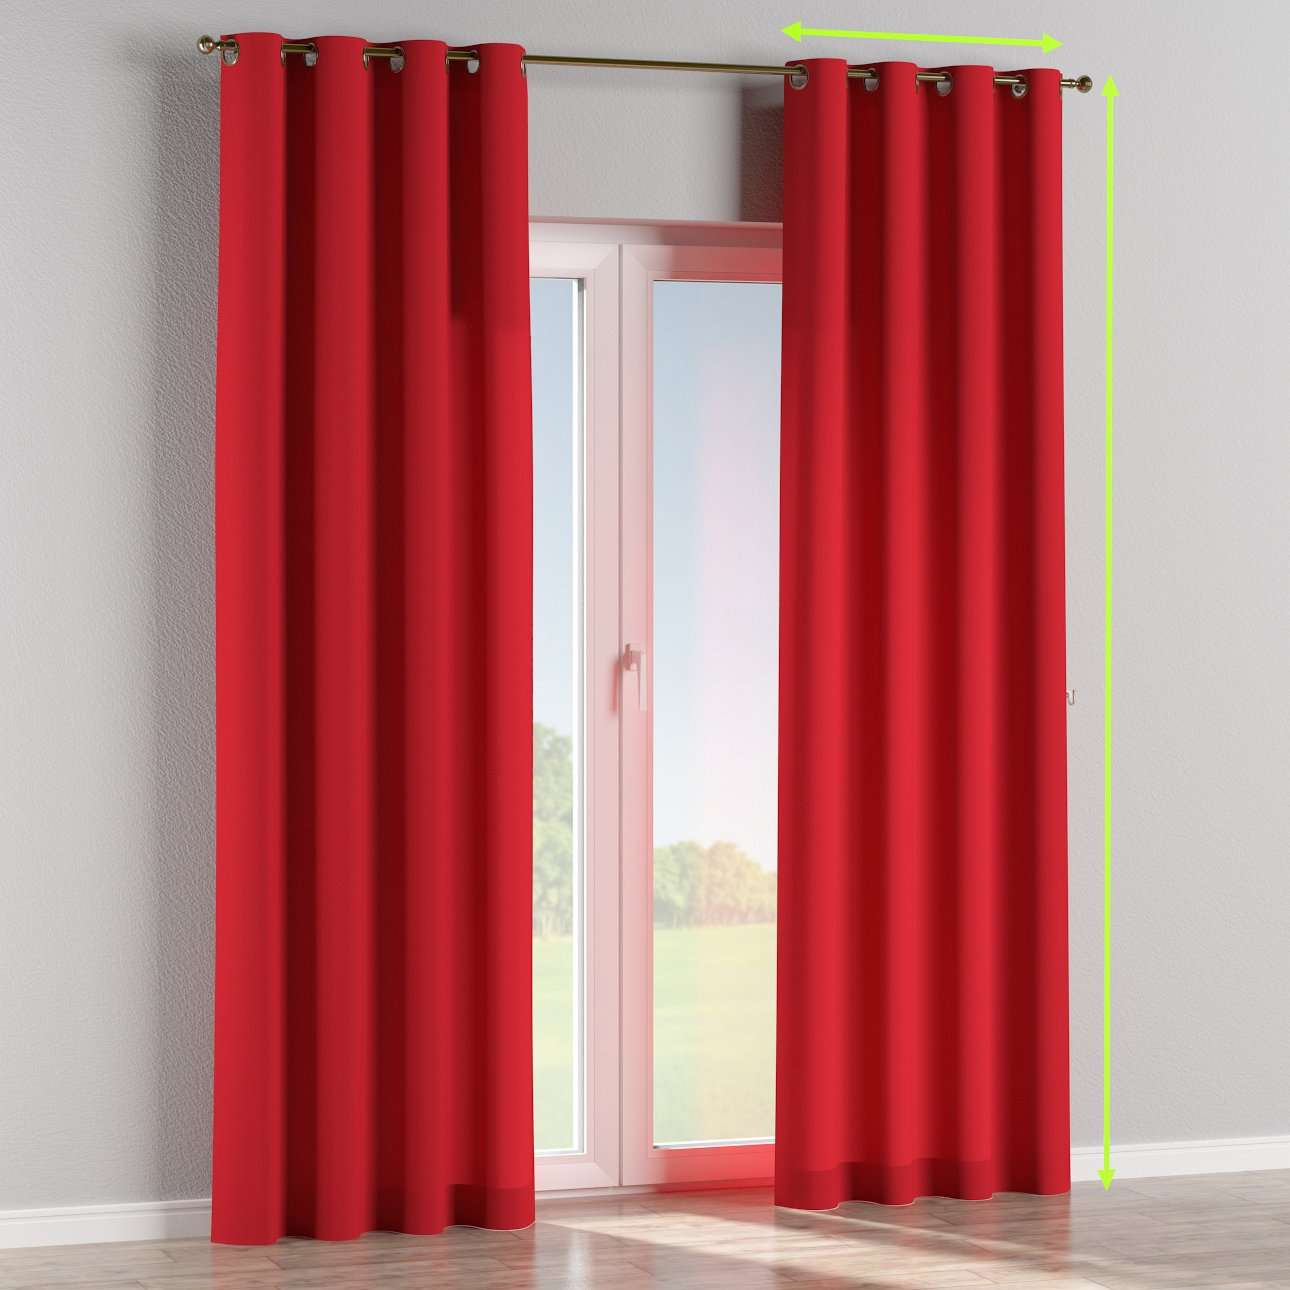 Eyelet curtains in collection Cotton Panama, fabric: 702-04